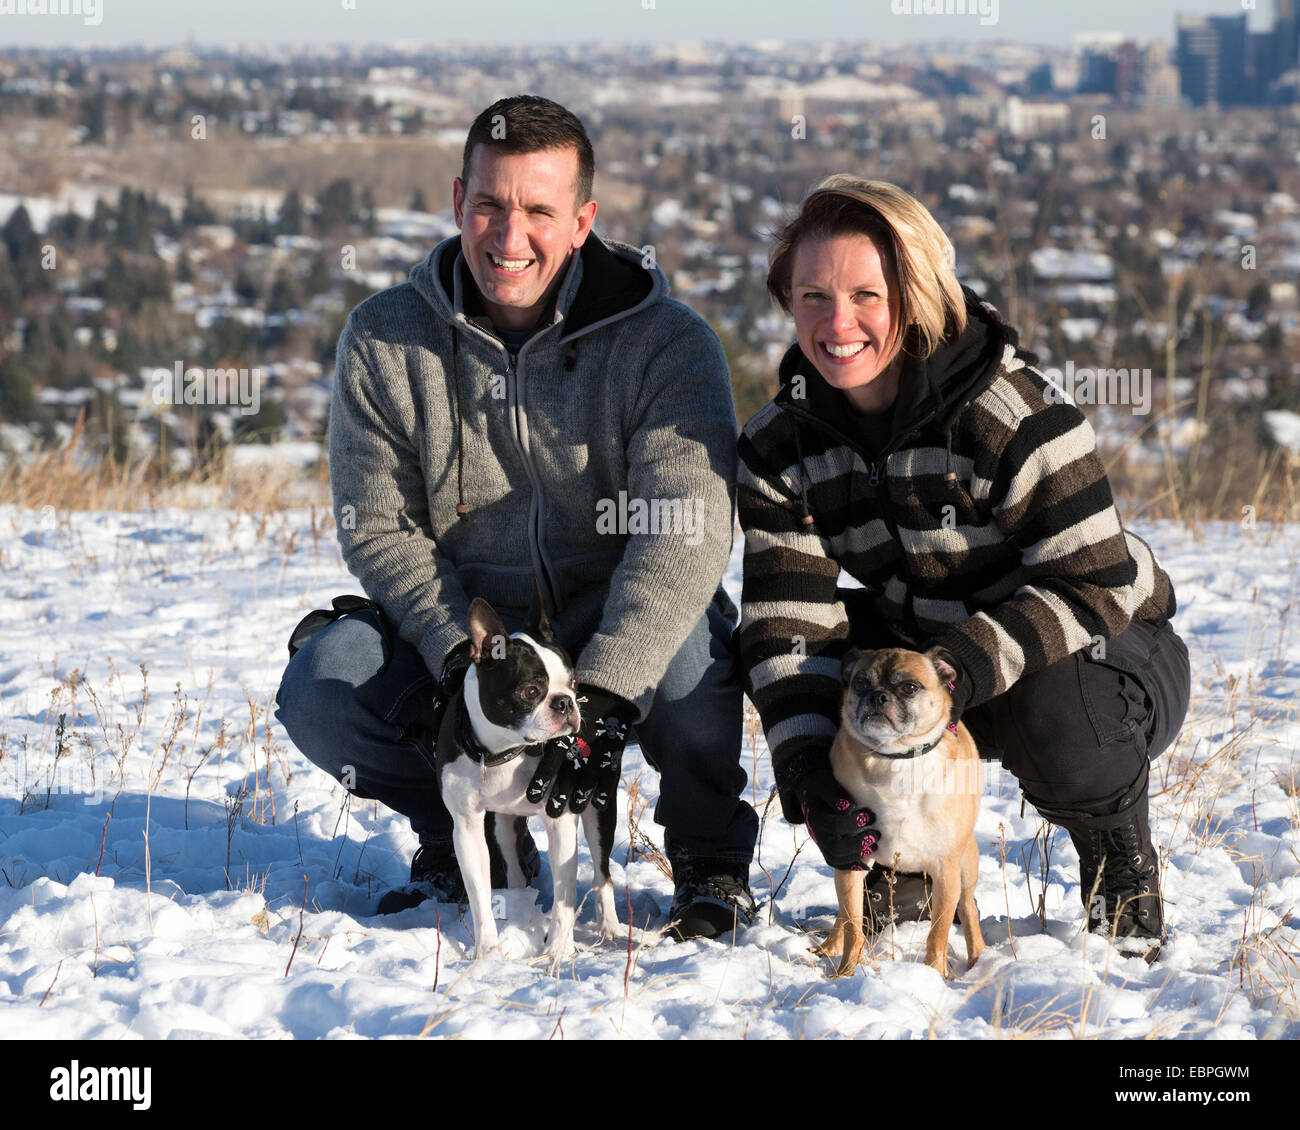 Couple with Boston Terrier and Bugg (cross between Boston Terrier and Pug) dogs in city park - Stock Image